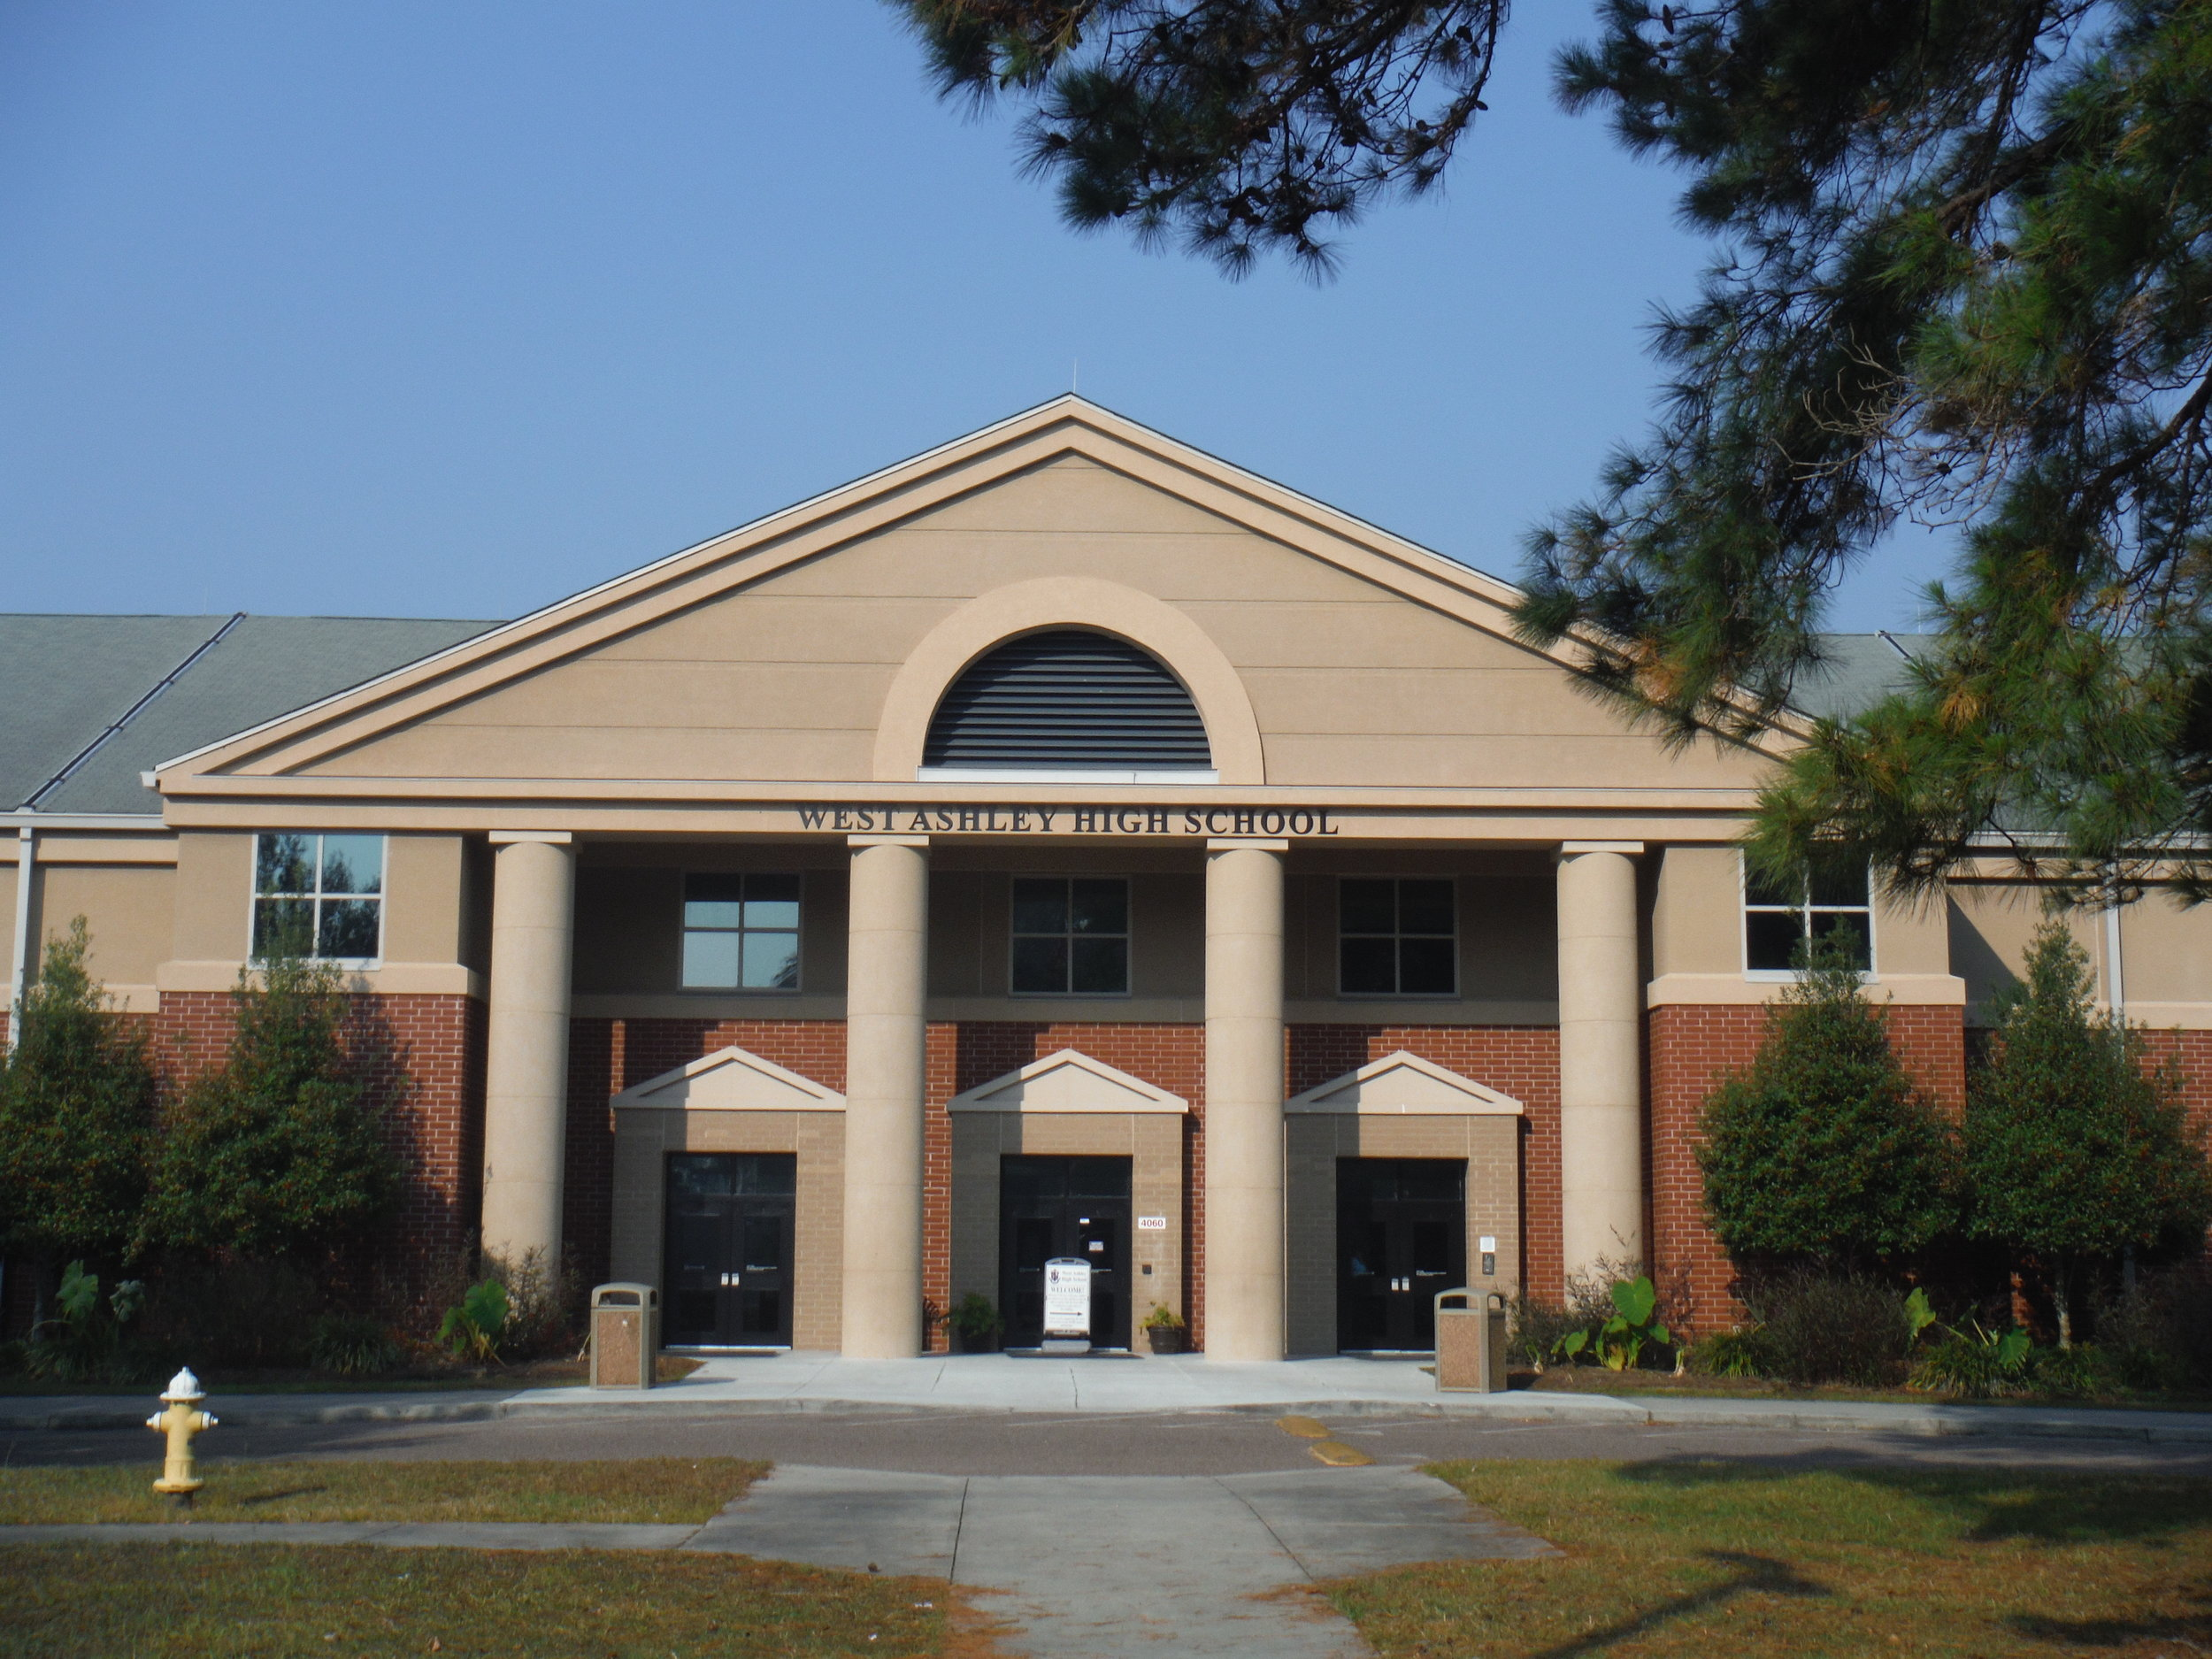 West Ashley high school Project by EBS, Exterior Building Services, LLC